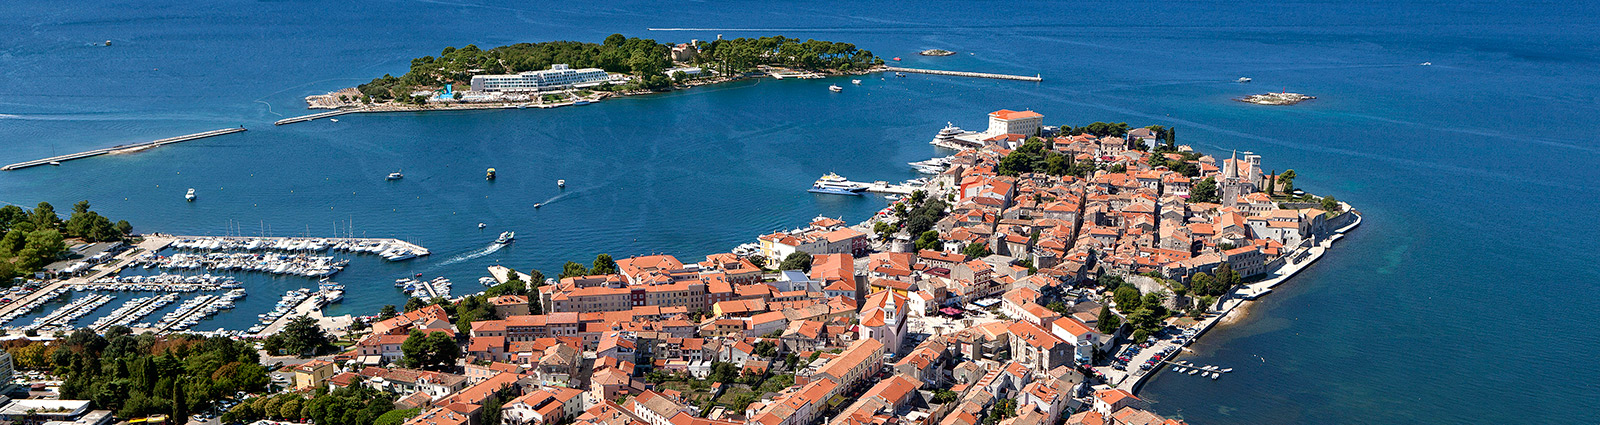 Poreč, Croatia | Valamar Hotels & Resorts